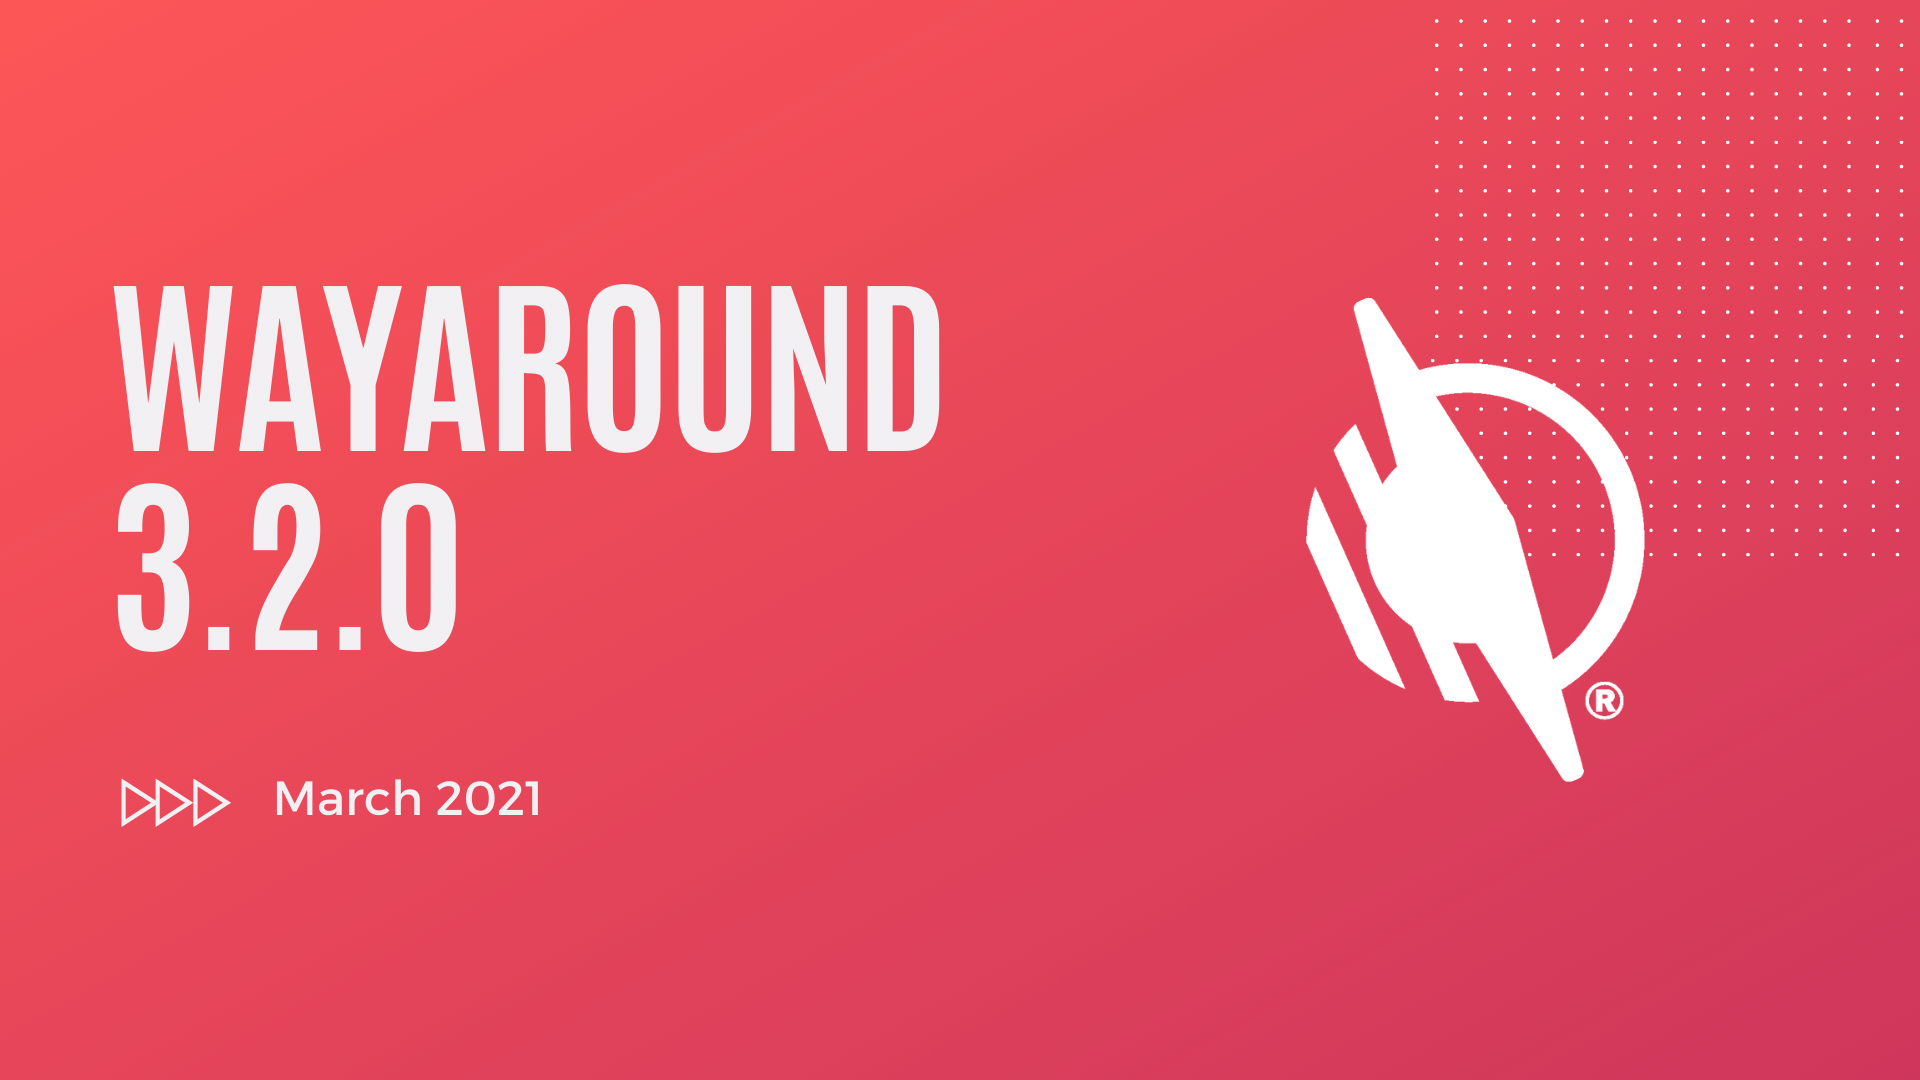 Illustration with a Red background and white text that says WayAround 3.2.0. March 2021.